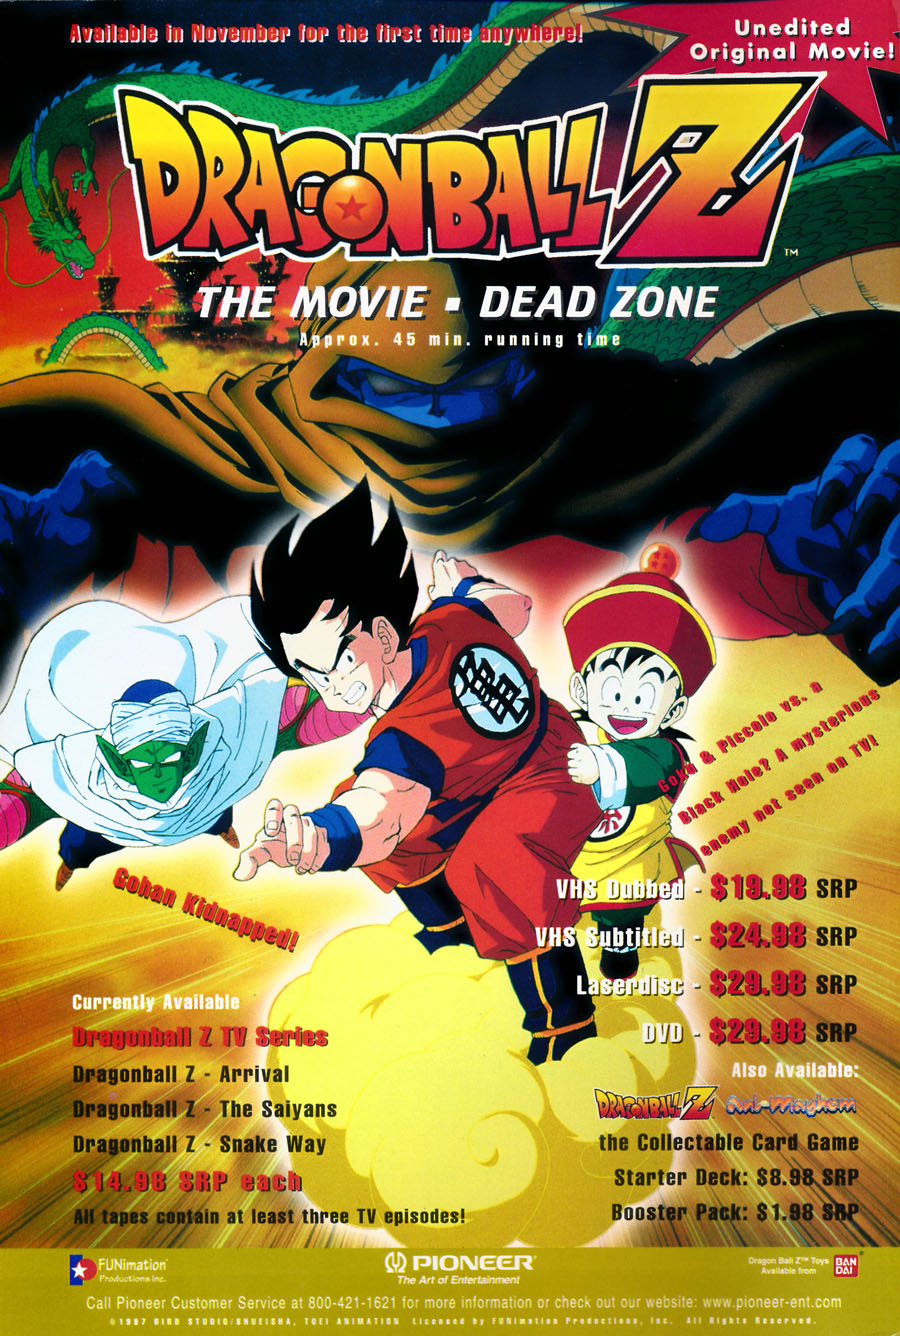 Dragon-Ball-Z-dragonball-dead-zone-movie-vhs-dvd-ad-pioneer-toei-funimation-unedited--Issue-3-December-1997